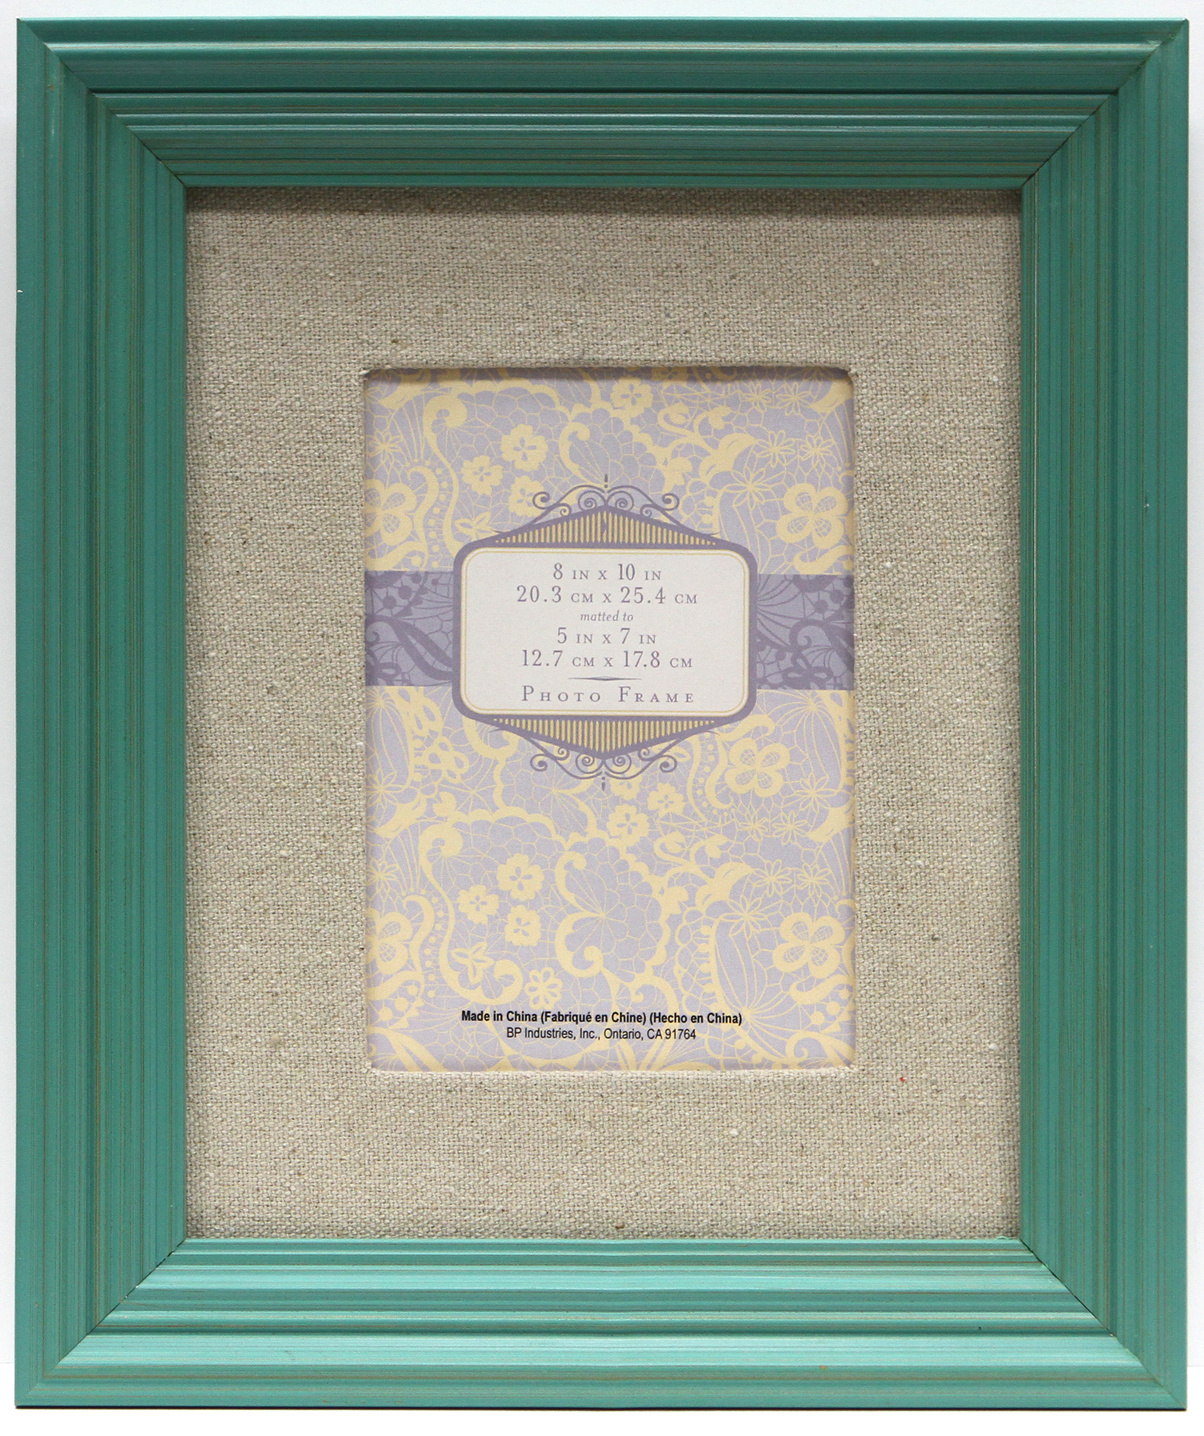 8x10 mat to 5x7 step bright teal frame joann step bright frame 8x10 to 5x7 teal jeuxipadfo Gallery